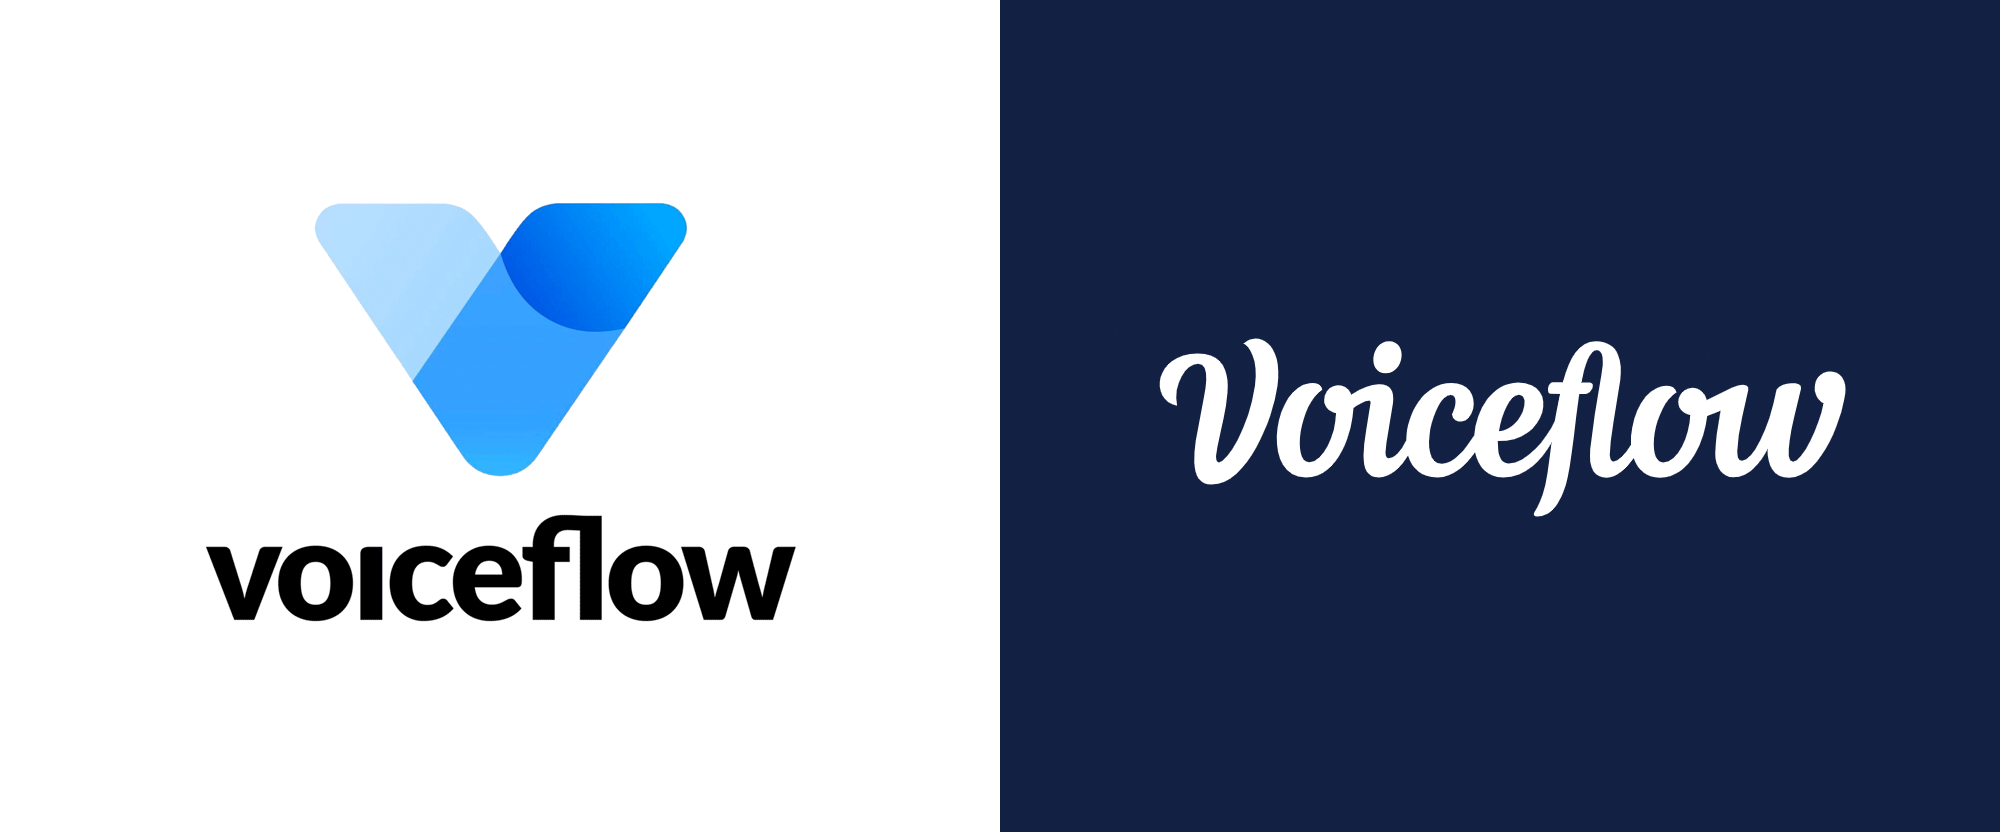 New Logo for Voiceflow by Lance